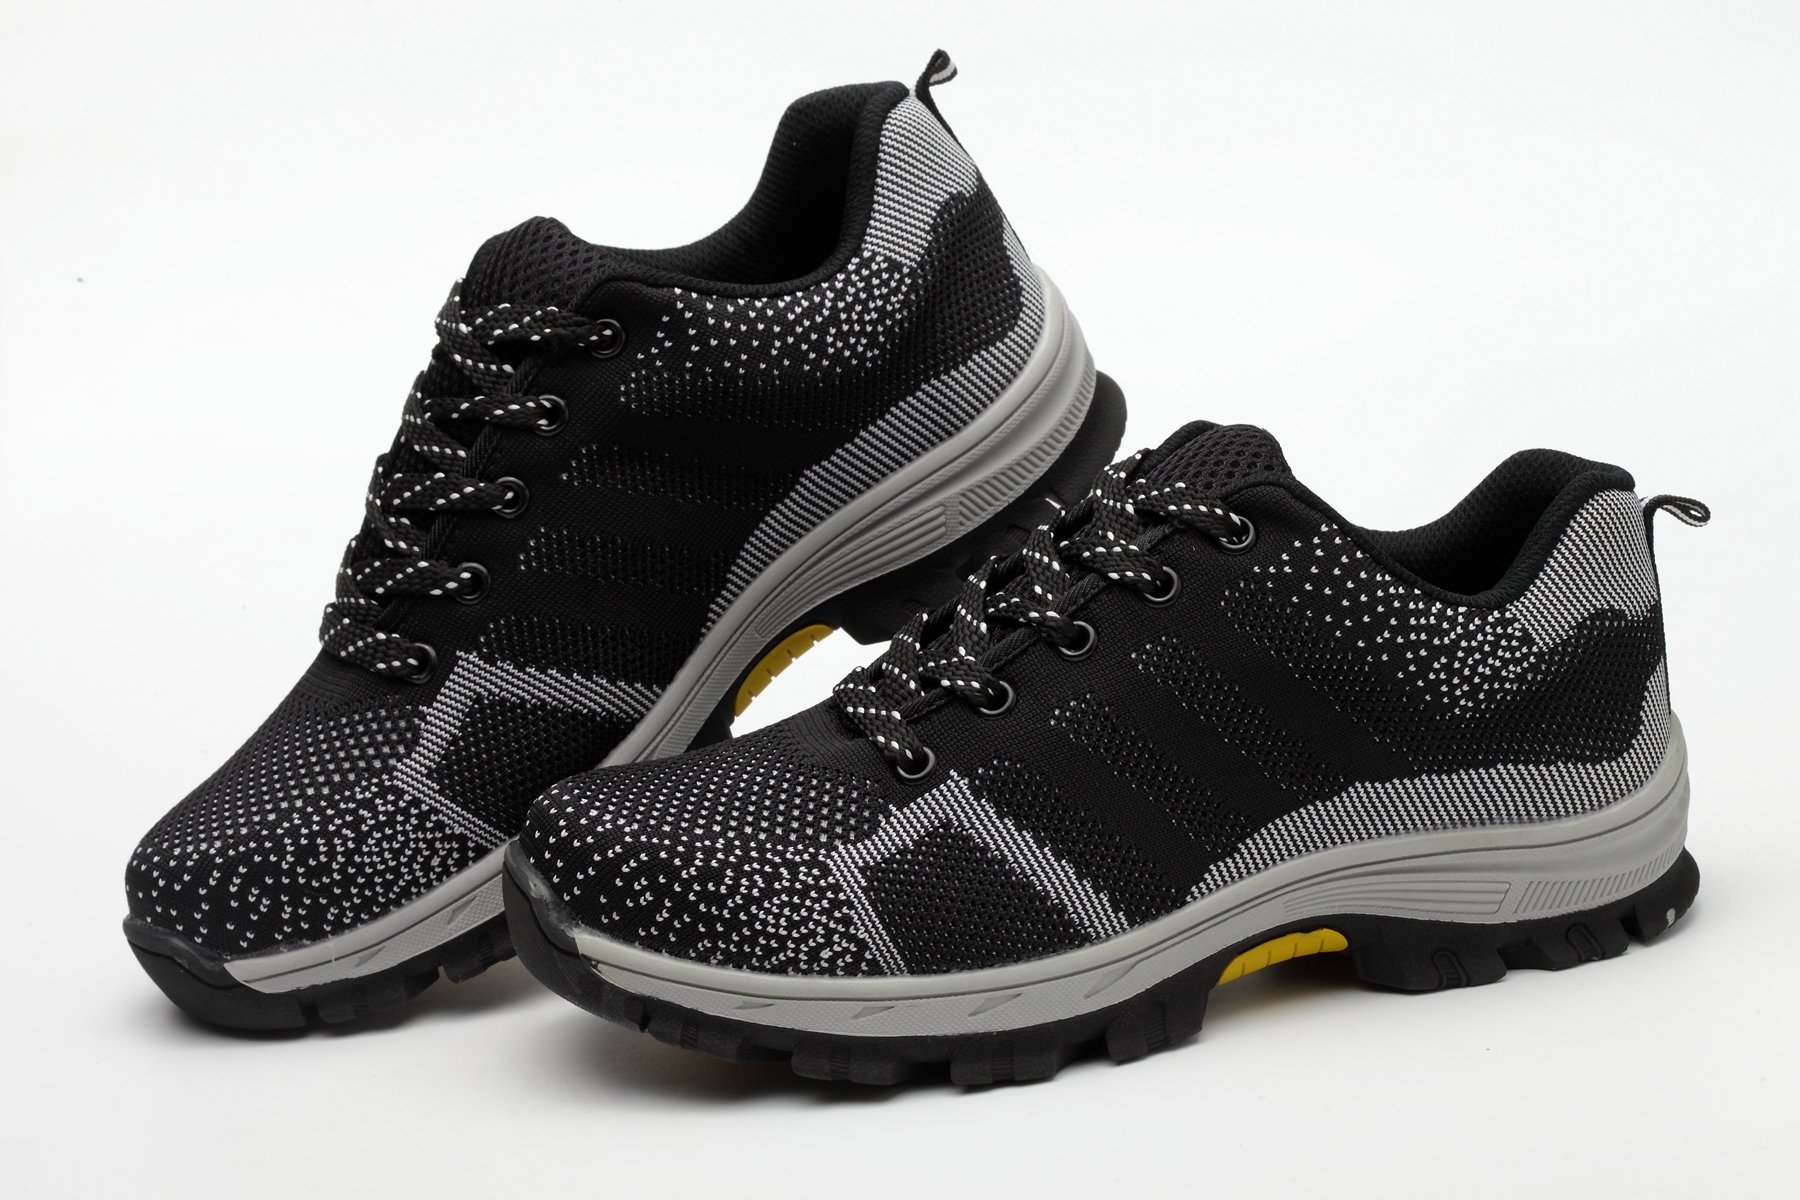 Men Fashion Large Size Breathable Mesh Steel Toe Caps Light Weight Work Safety Summer Shoes